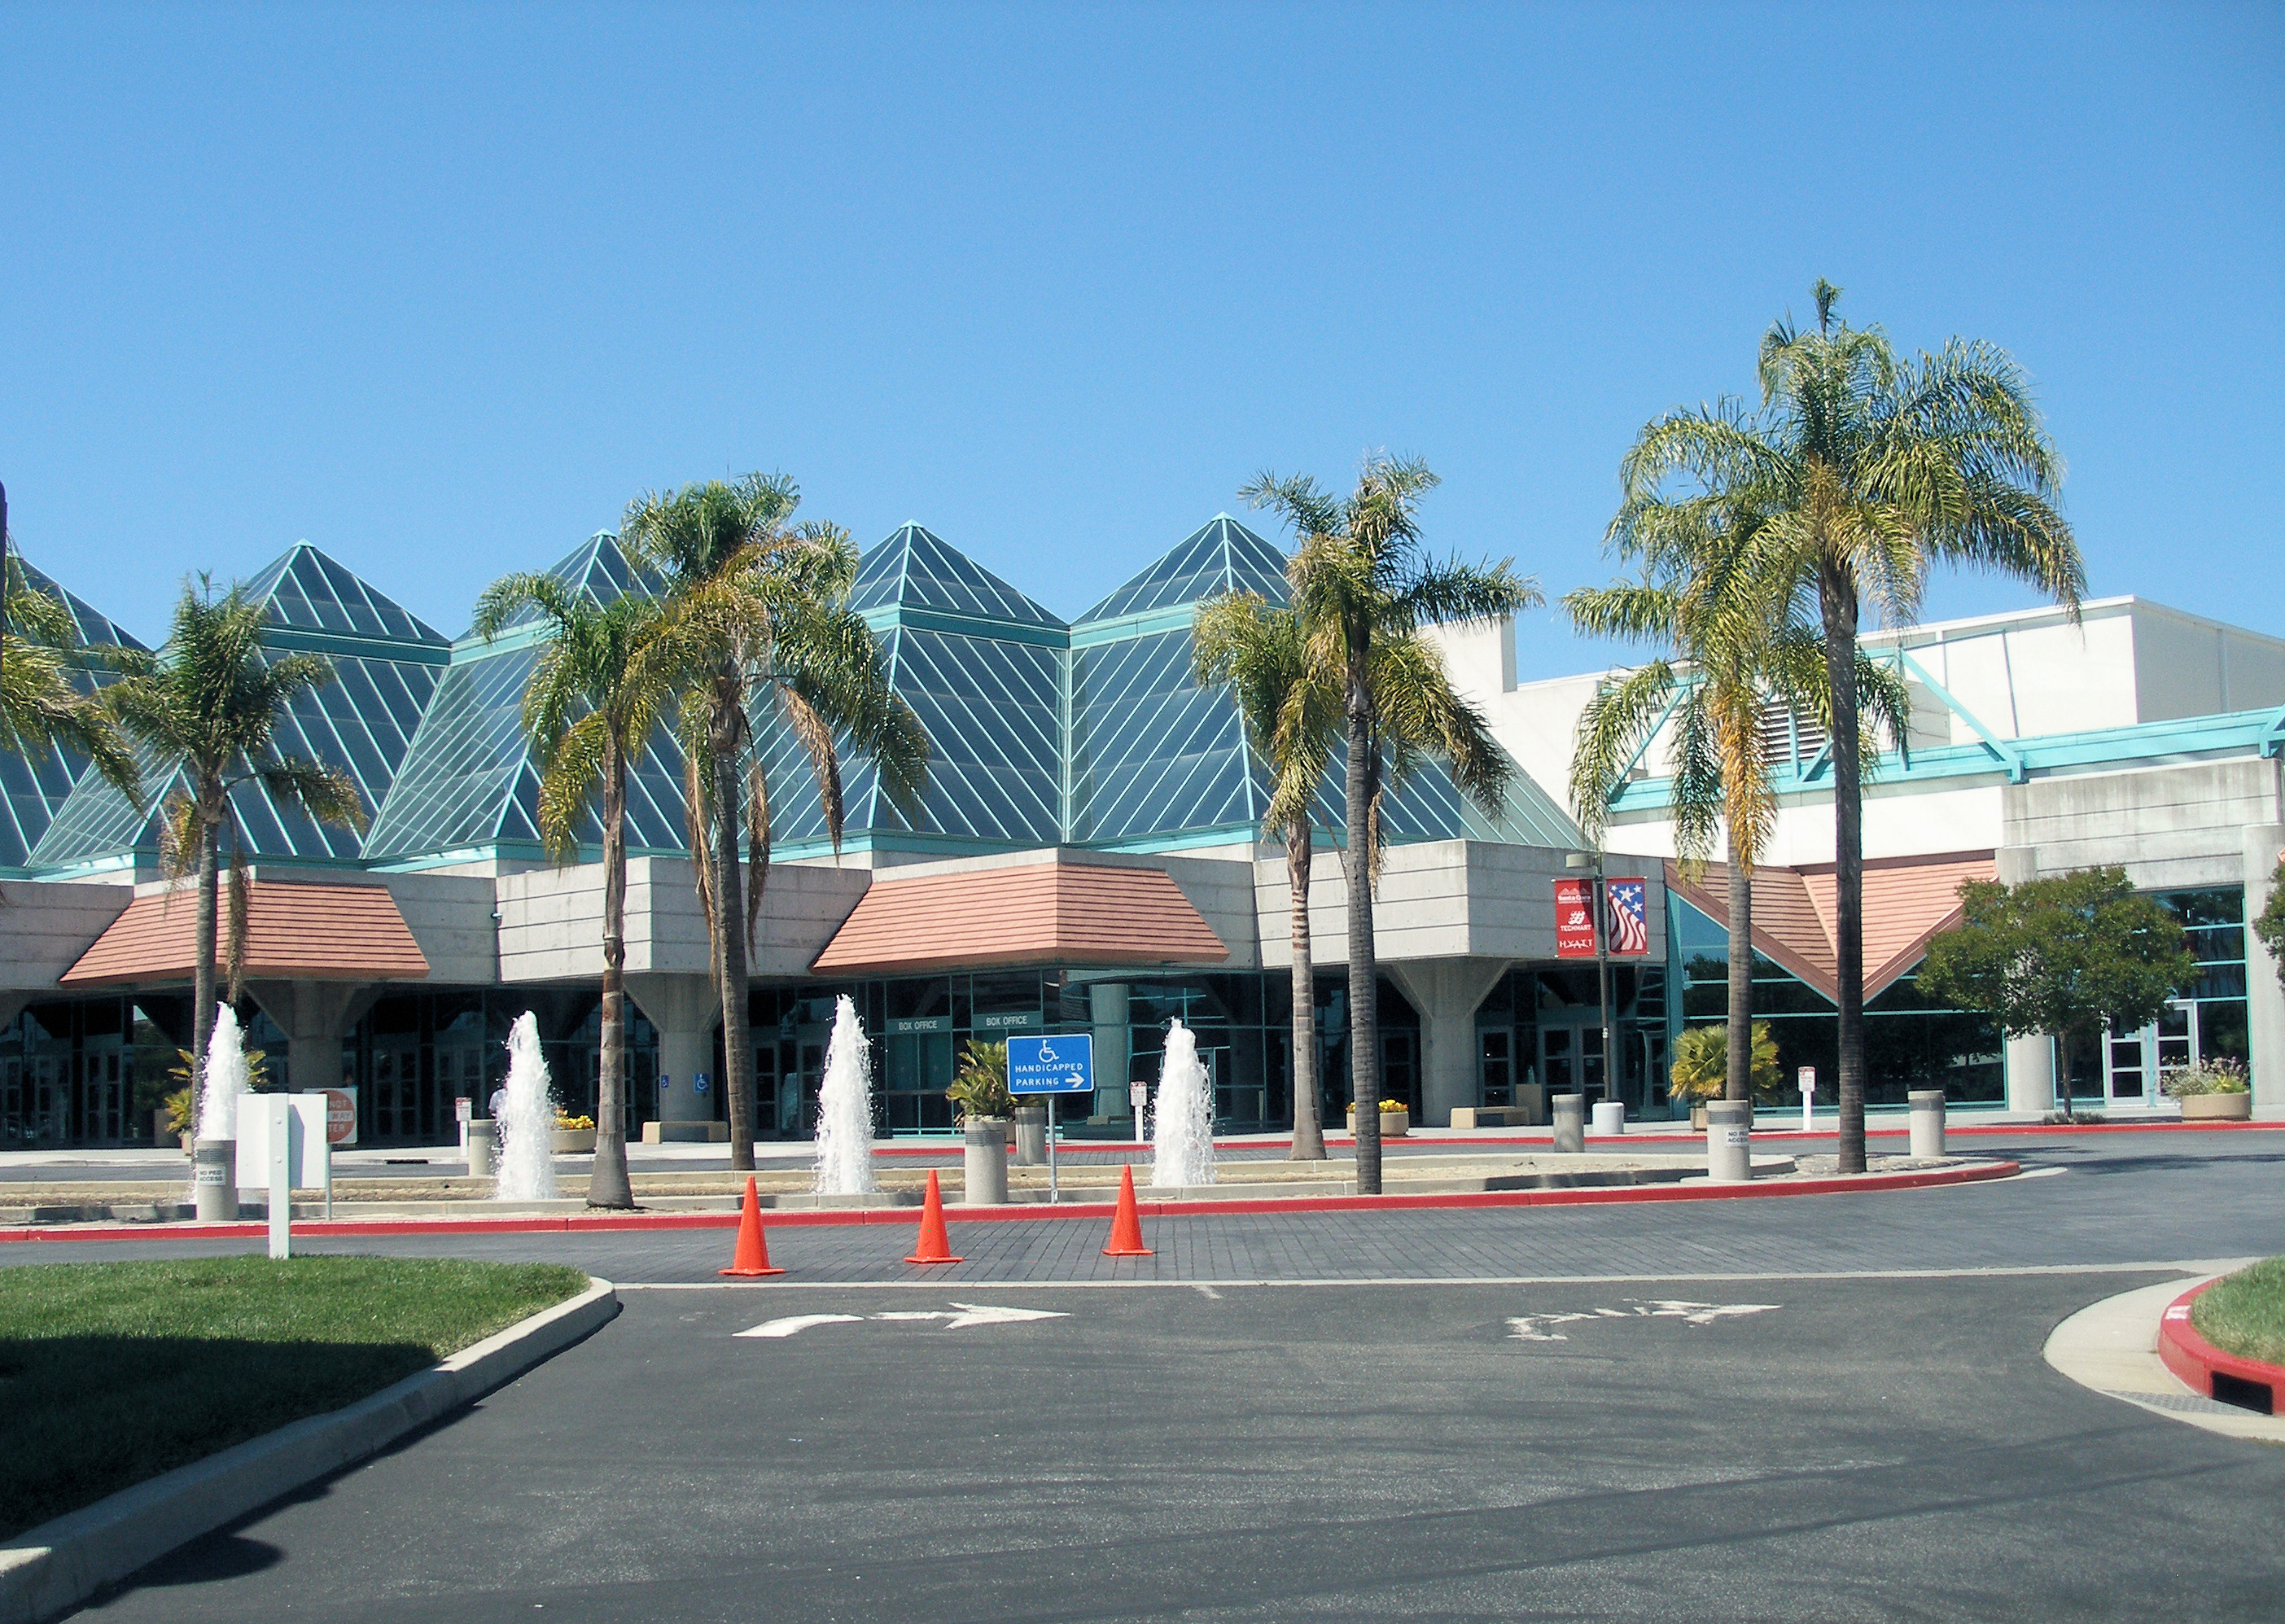 SiliconKcon will be held at Santa Clara Convention Center on November 19.